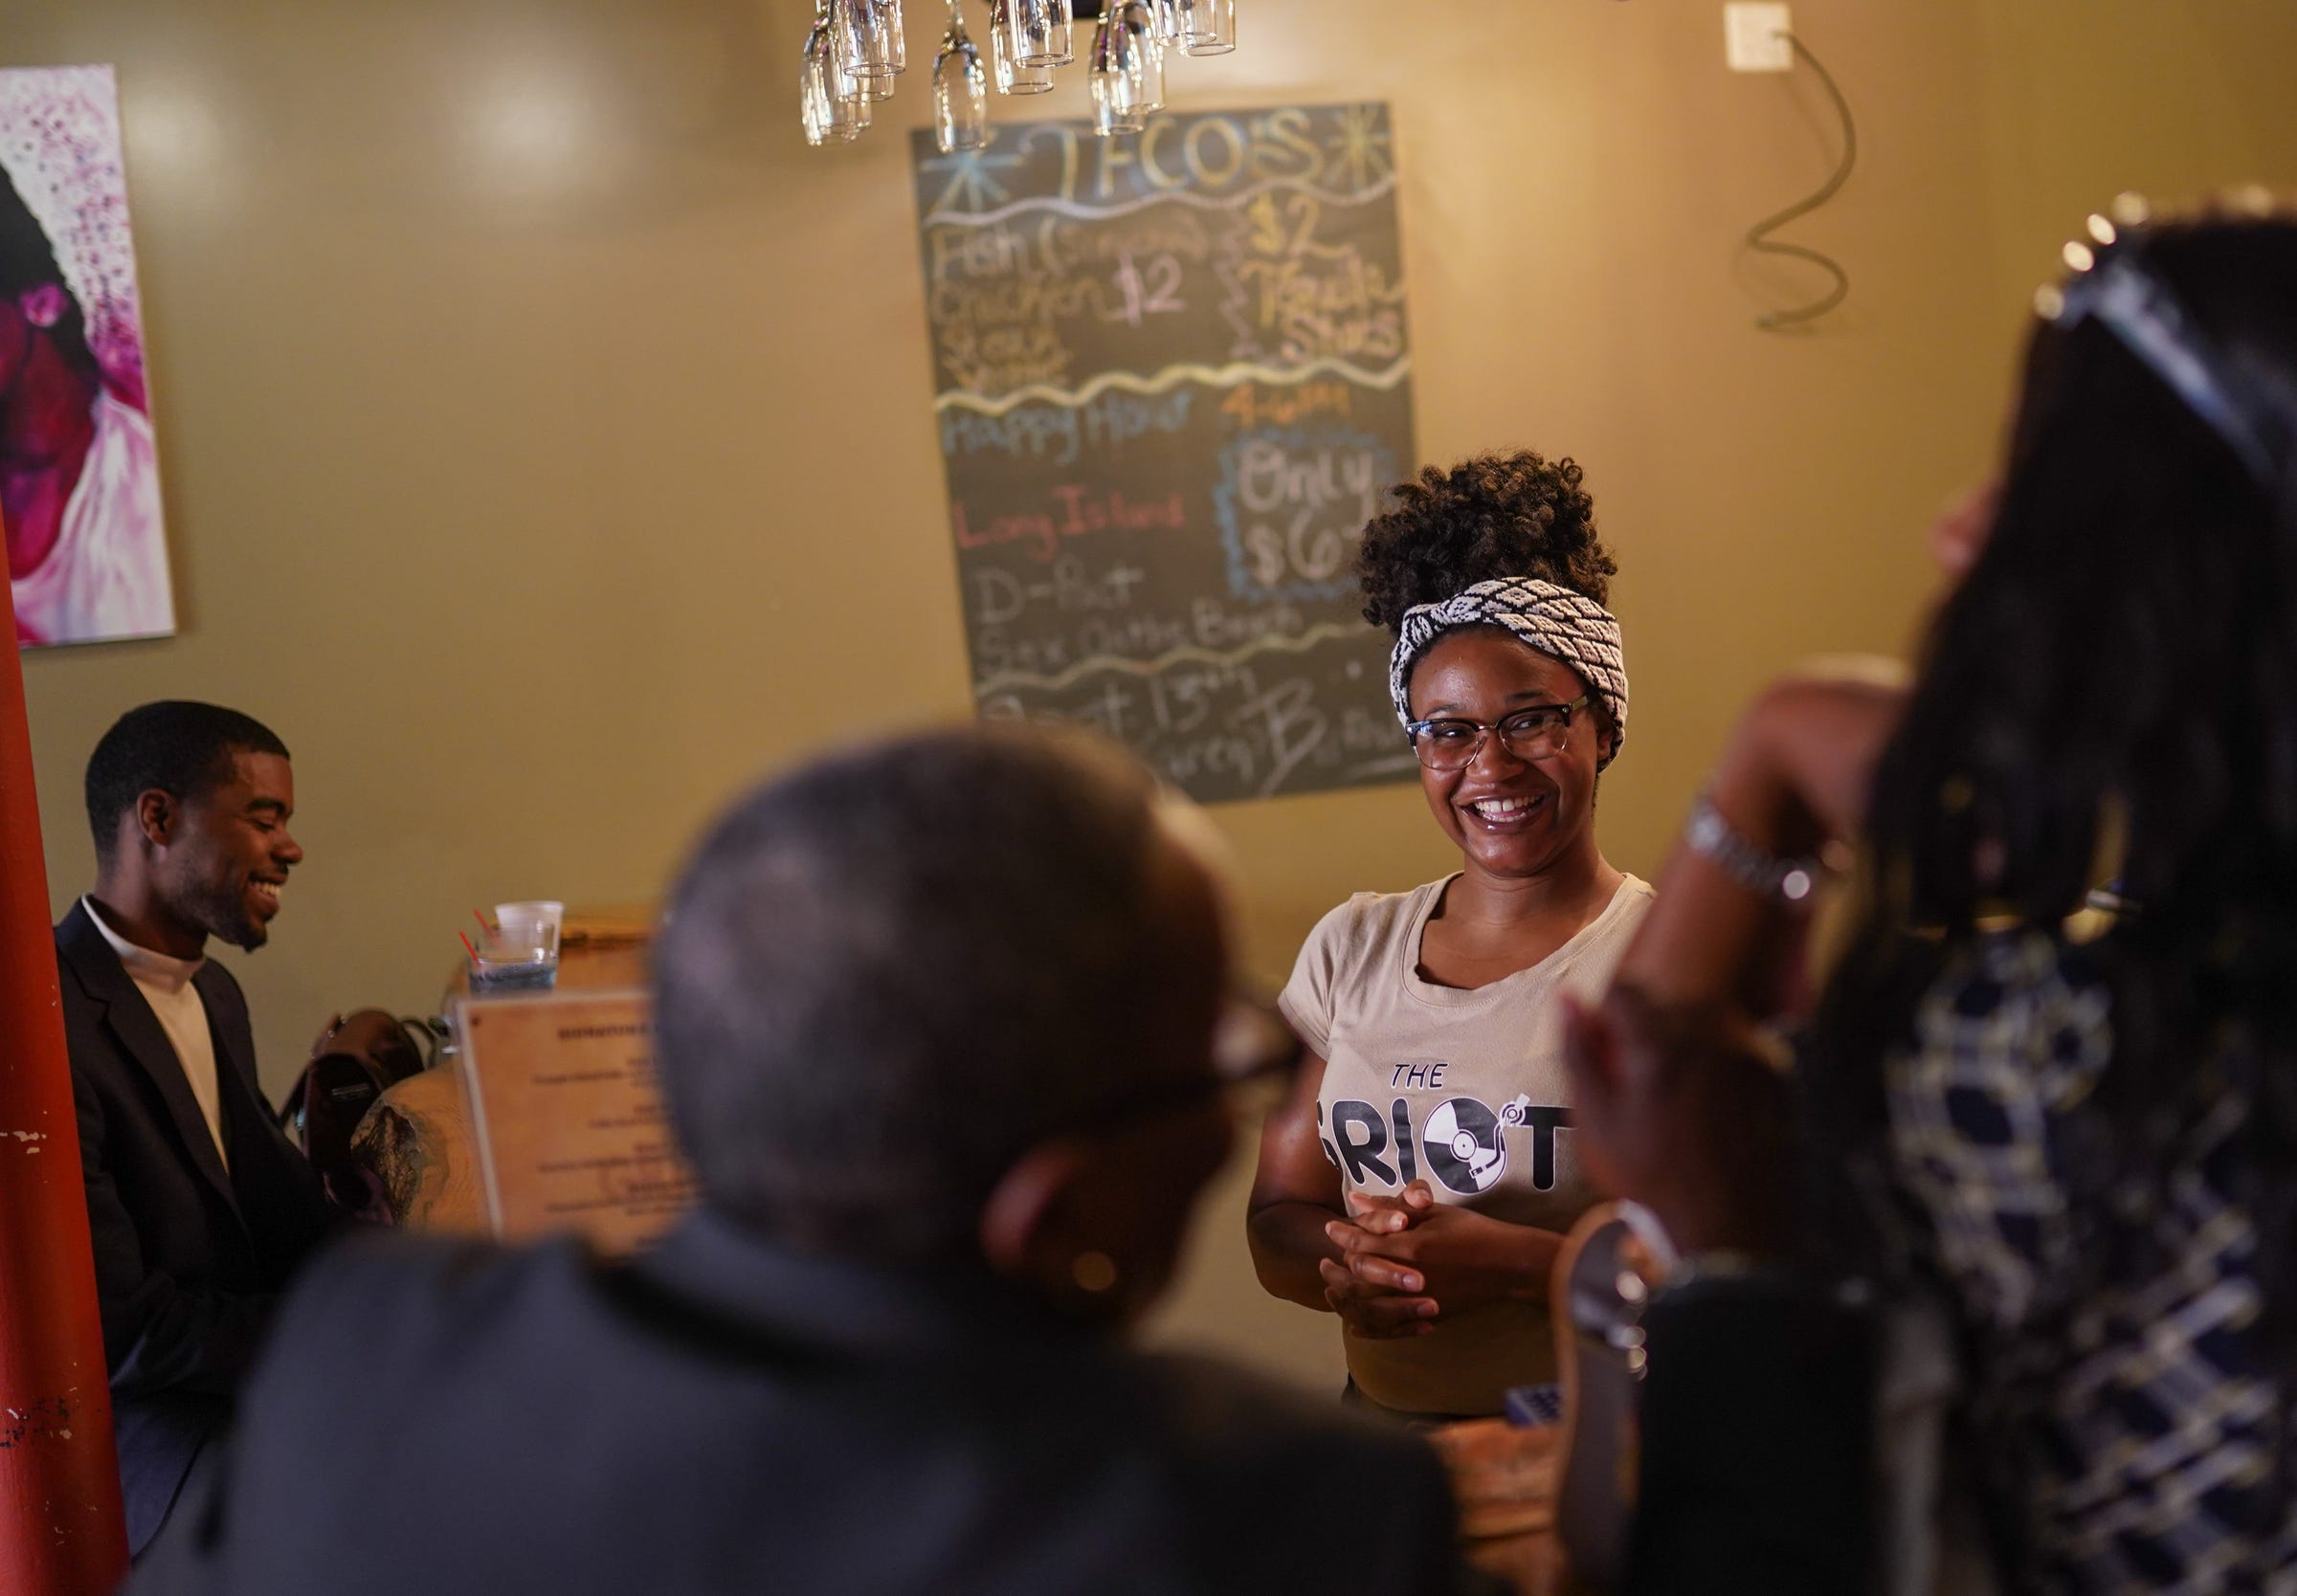 Wayne State University student DeLawren Bradshaw, who is working two part-time jobs to limit her student loan debt, talks with customers while bartending at Griot Music Lounge in Detroit on Tuesday, September 10, 2019.